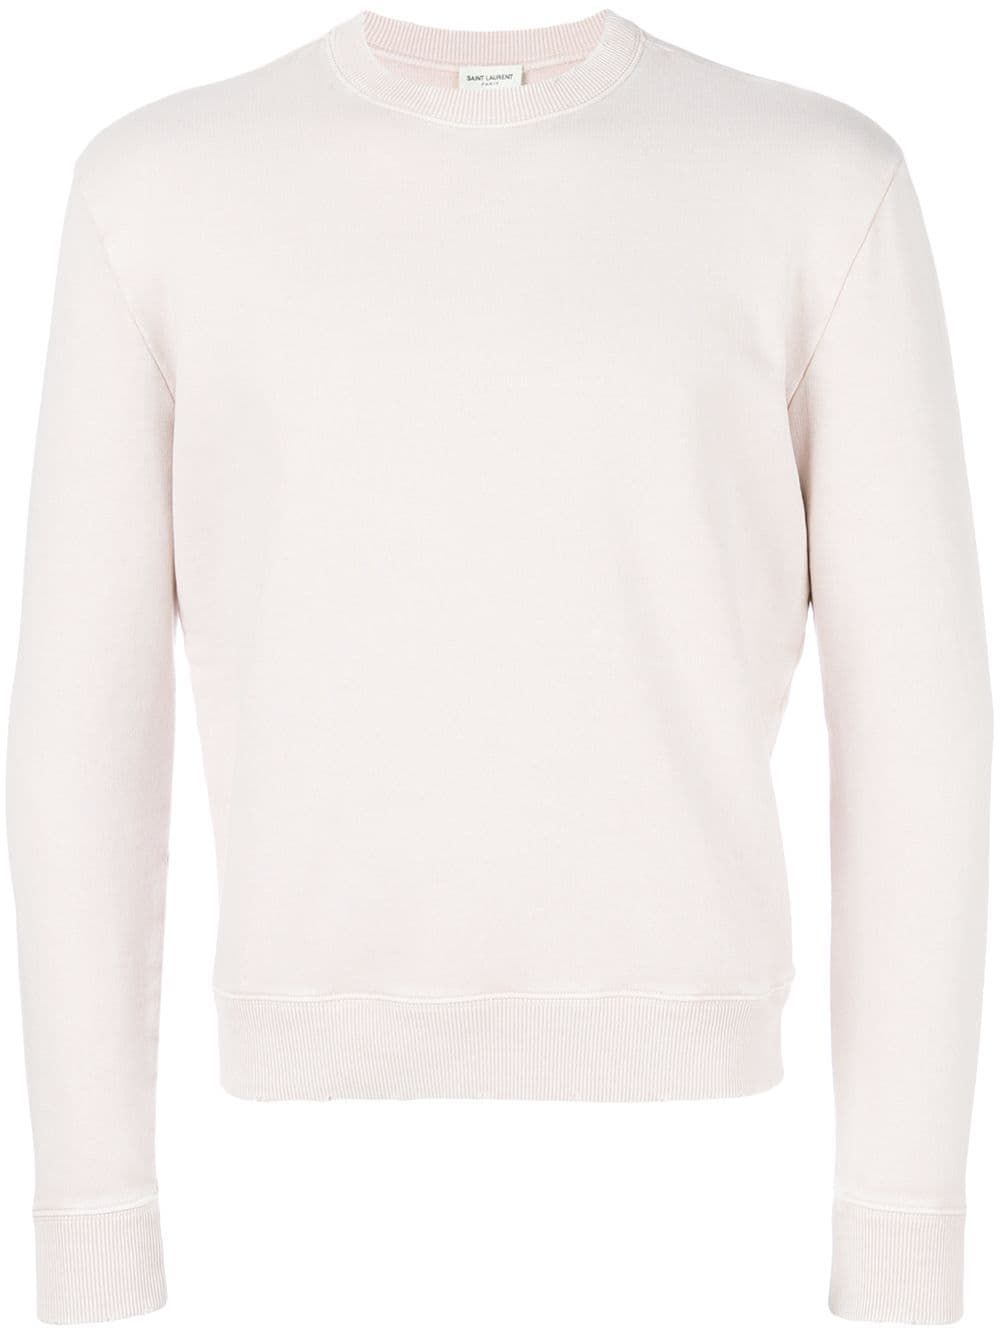 872043d9a41e47 Saint Laurent distressed effect sweatshirt - Pink in 2019 | Products ...